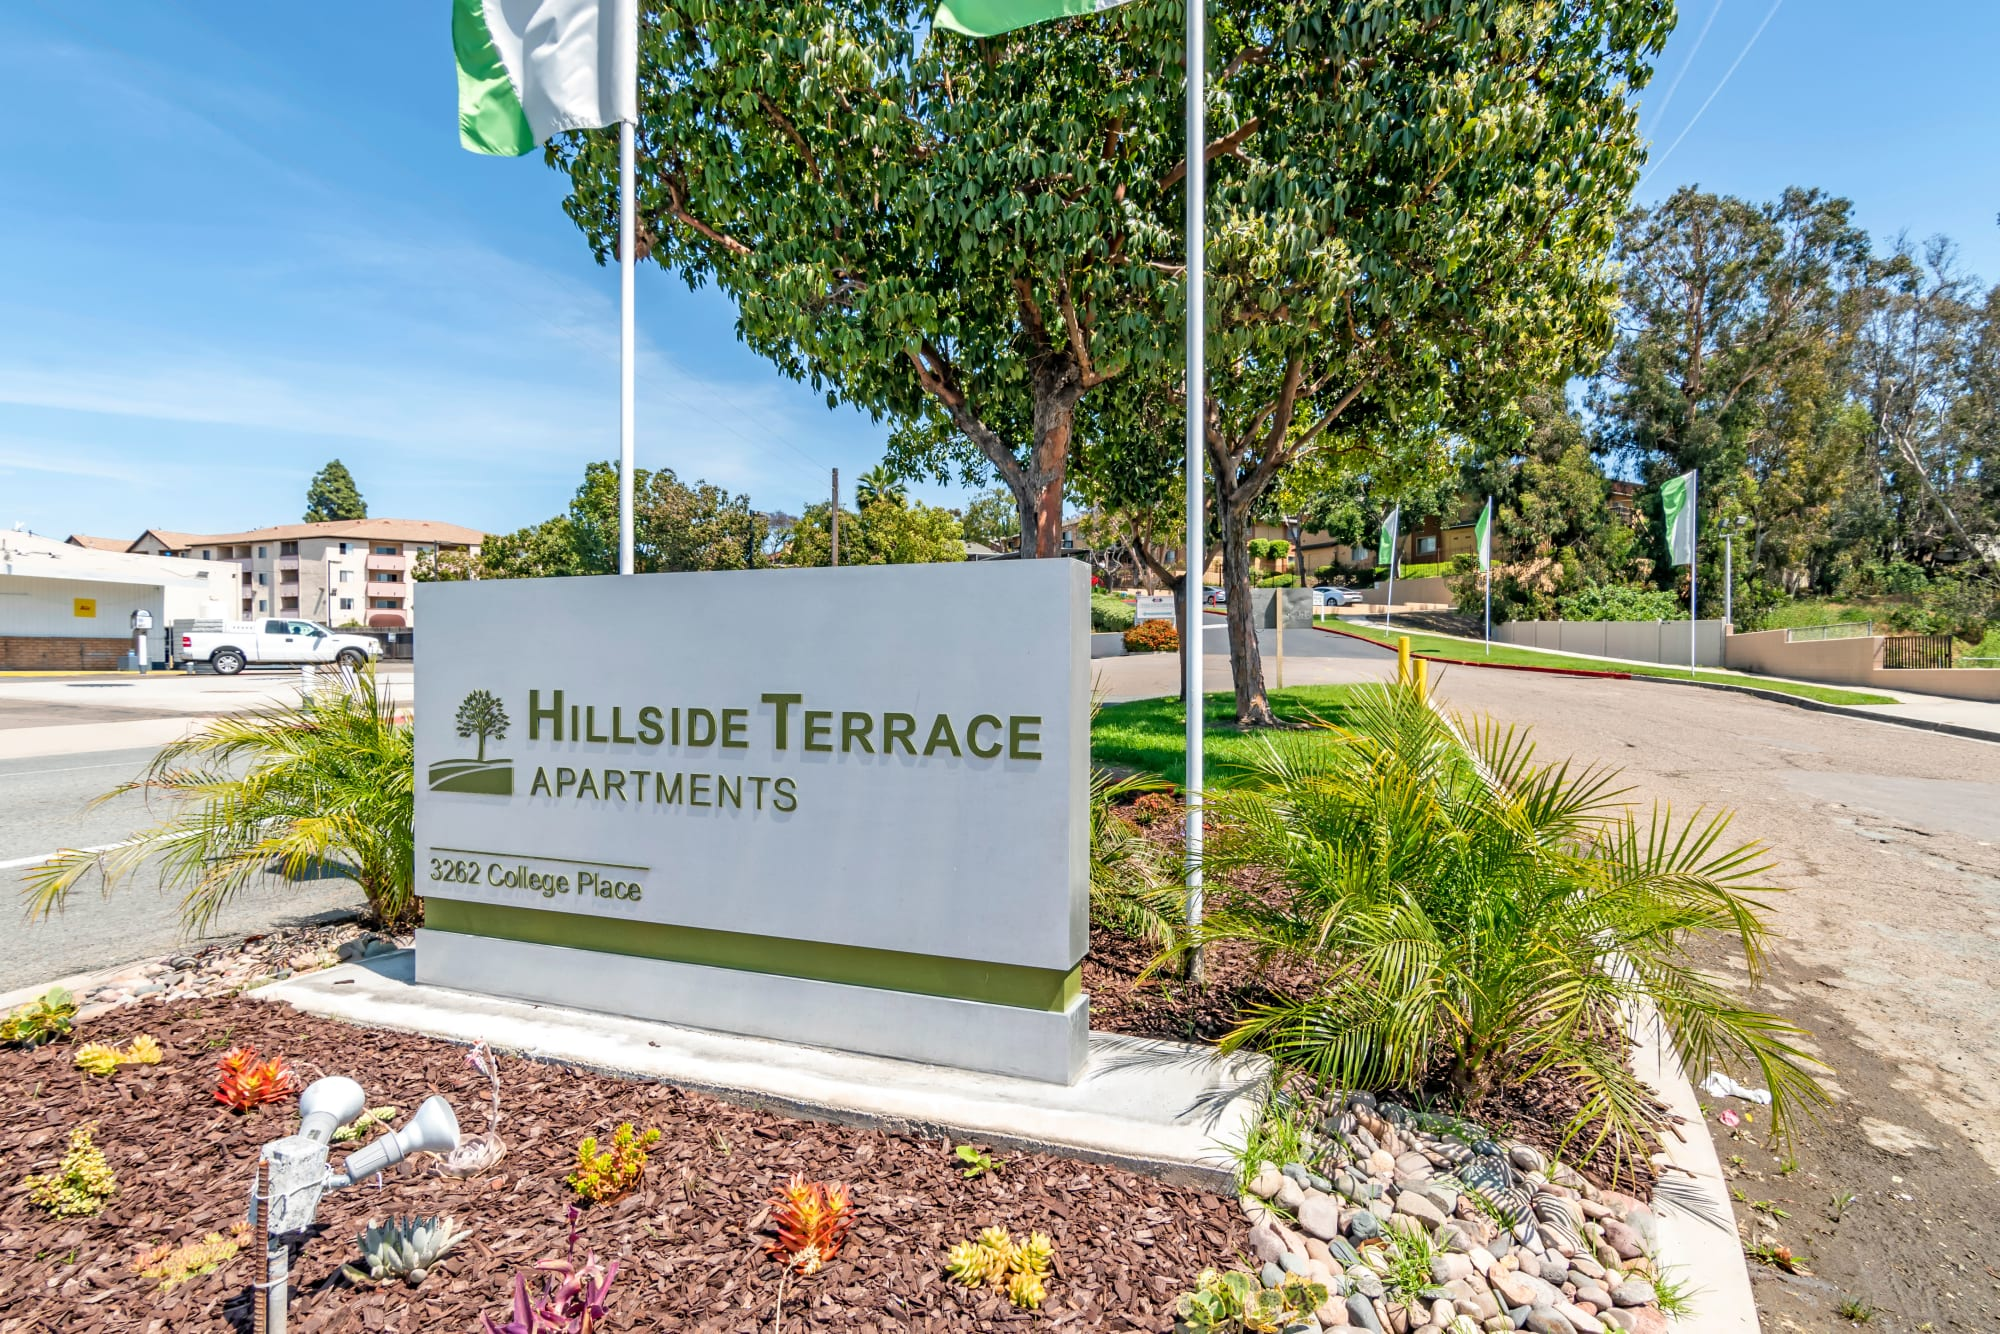 The monument sign at Hillside Terrace Apartments in Lemon Grove, California